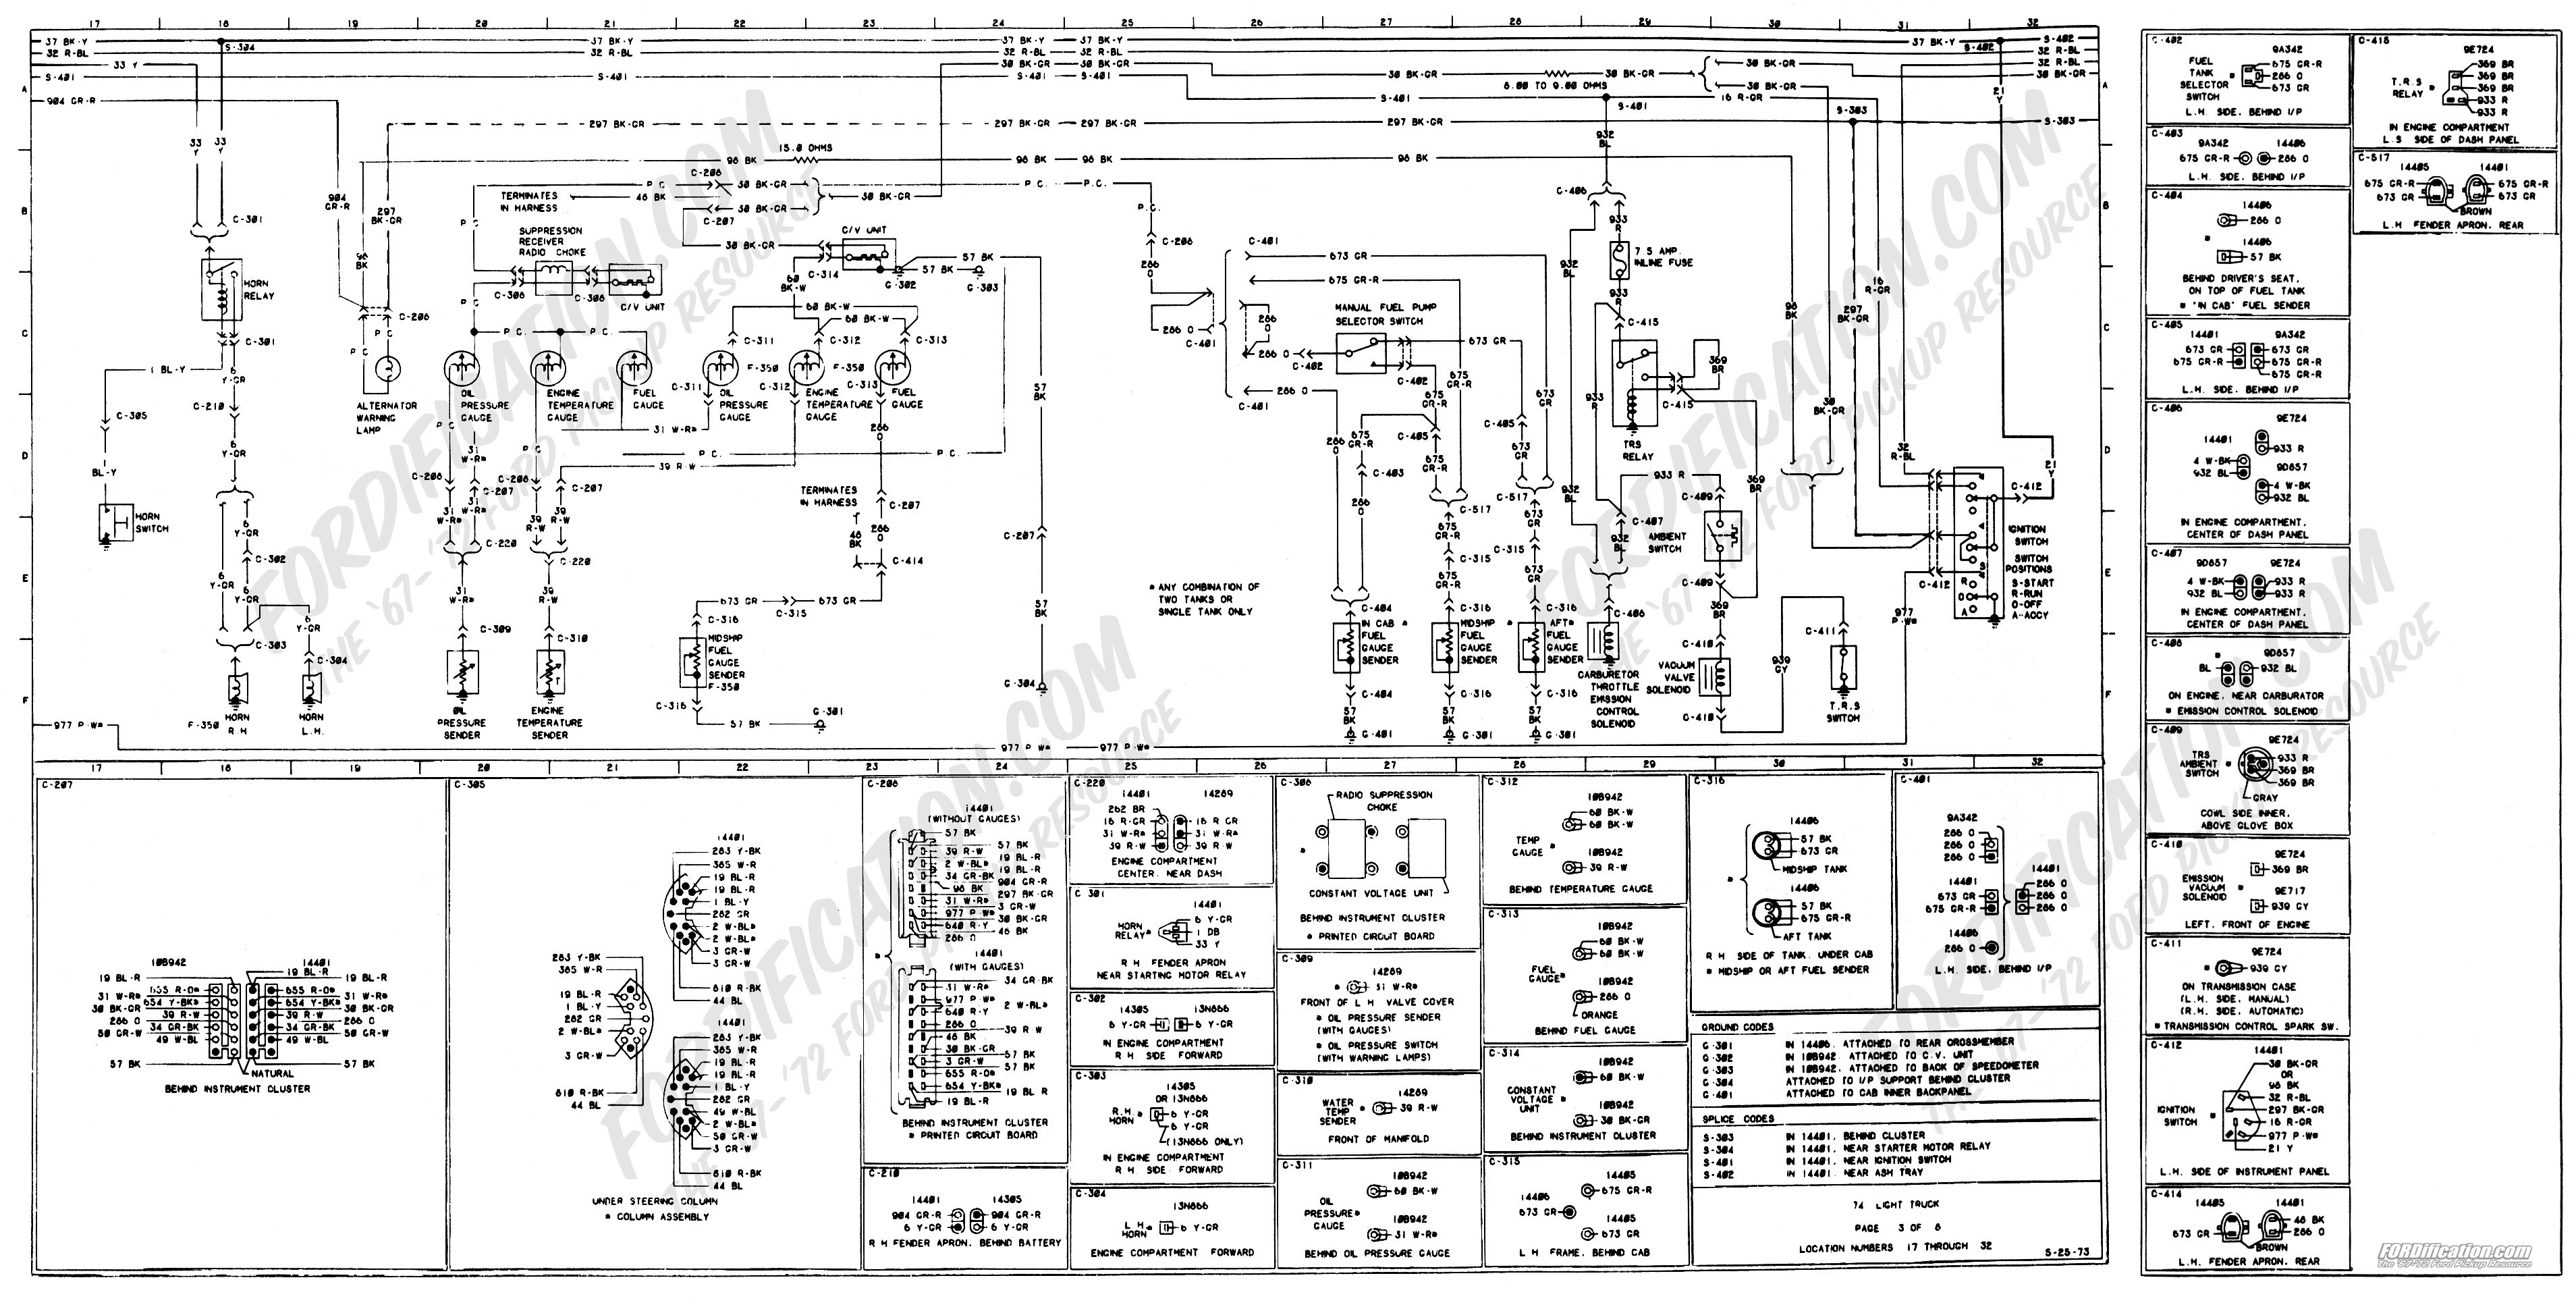 1978 ford truck wiring schematic | free wiring diagram 1977 ford f100 wiring harness